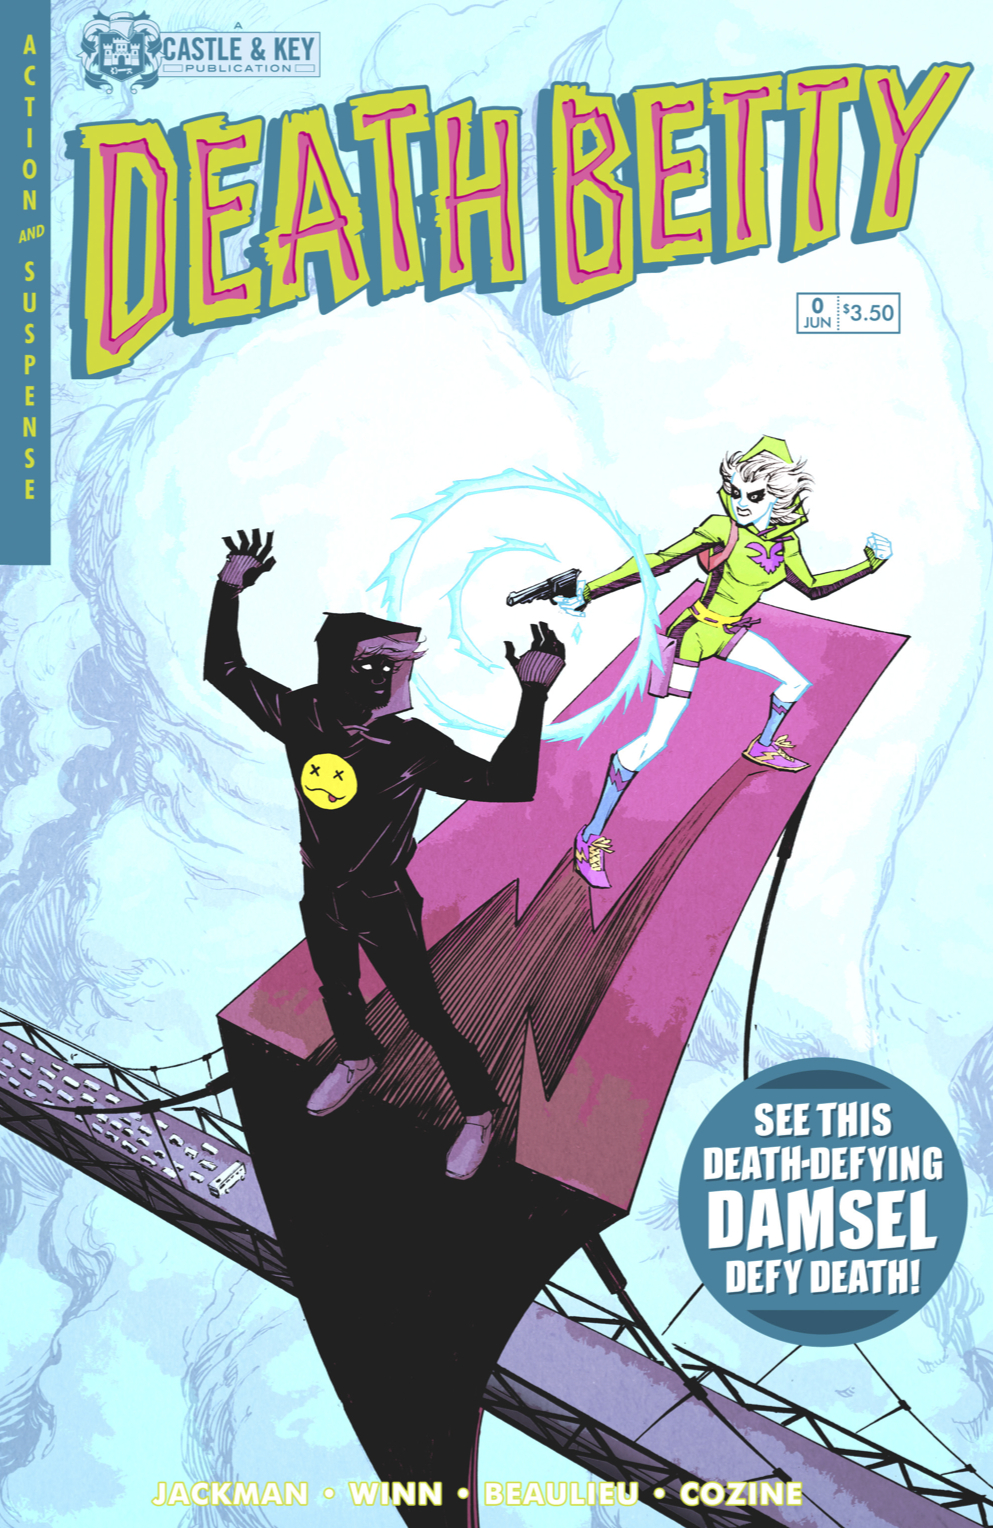 CLICK HERE and the cover of Death Betty Issue # Less Than Zero will fill your screen.